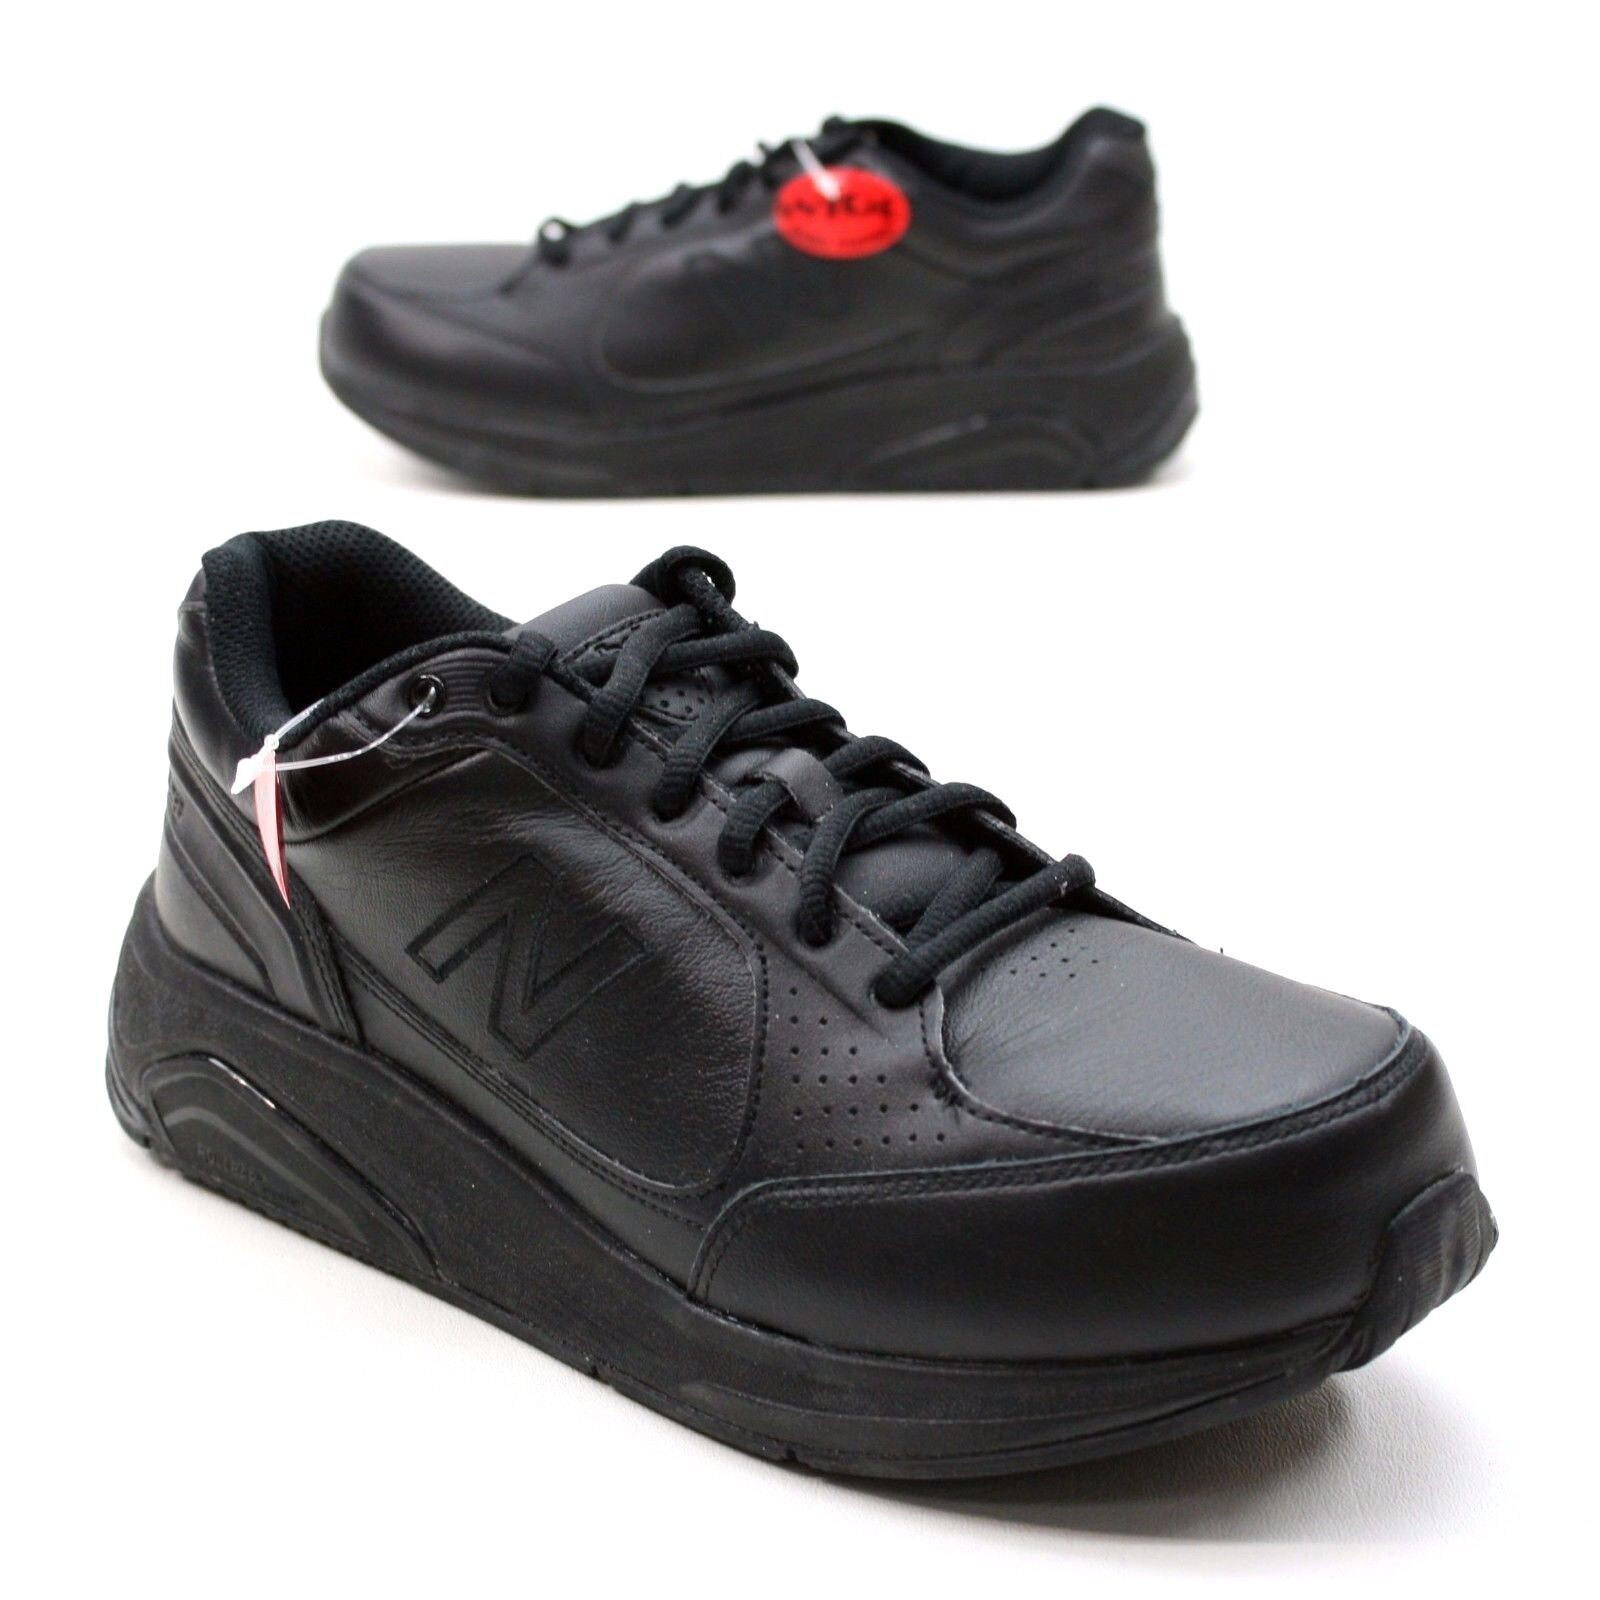 purchase cheap a67b9 96799 NEW - NEW BALANCE 928 Men s 7.5 6E 6E 6E Extra Wide Black Leather Walking  Sneakers